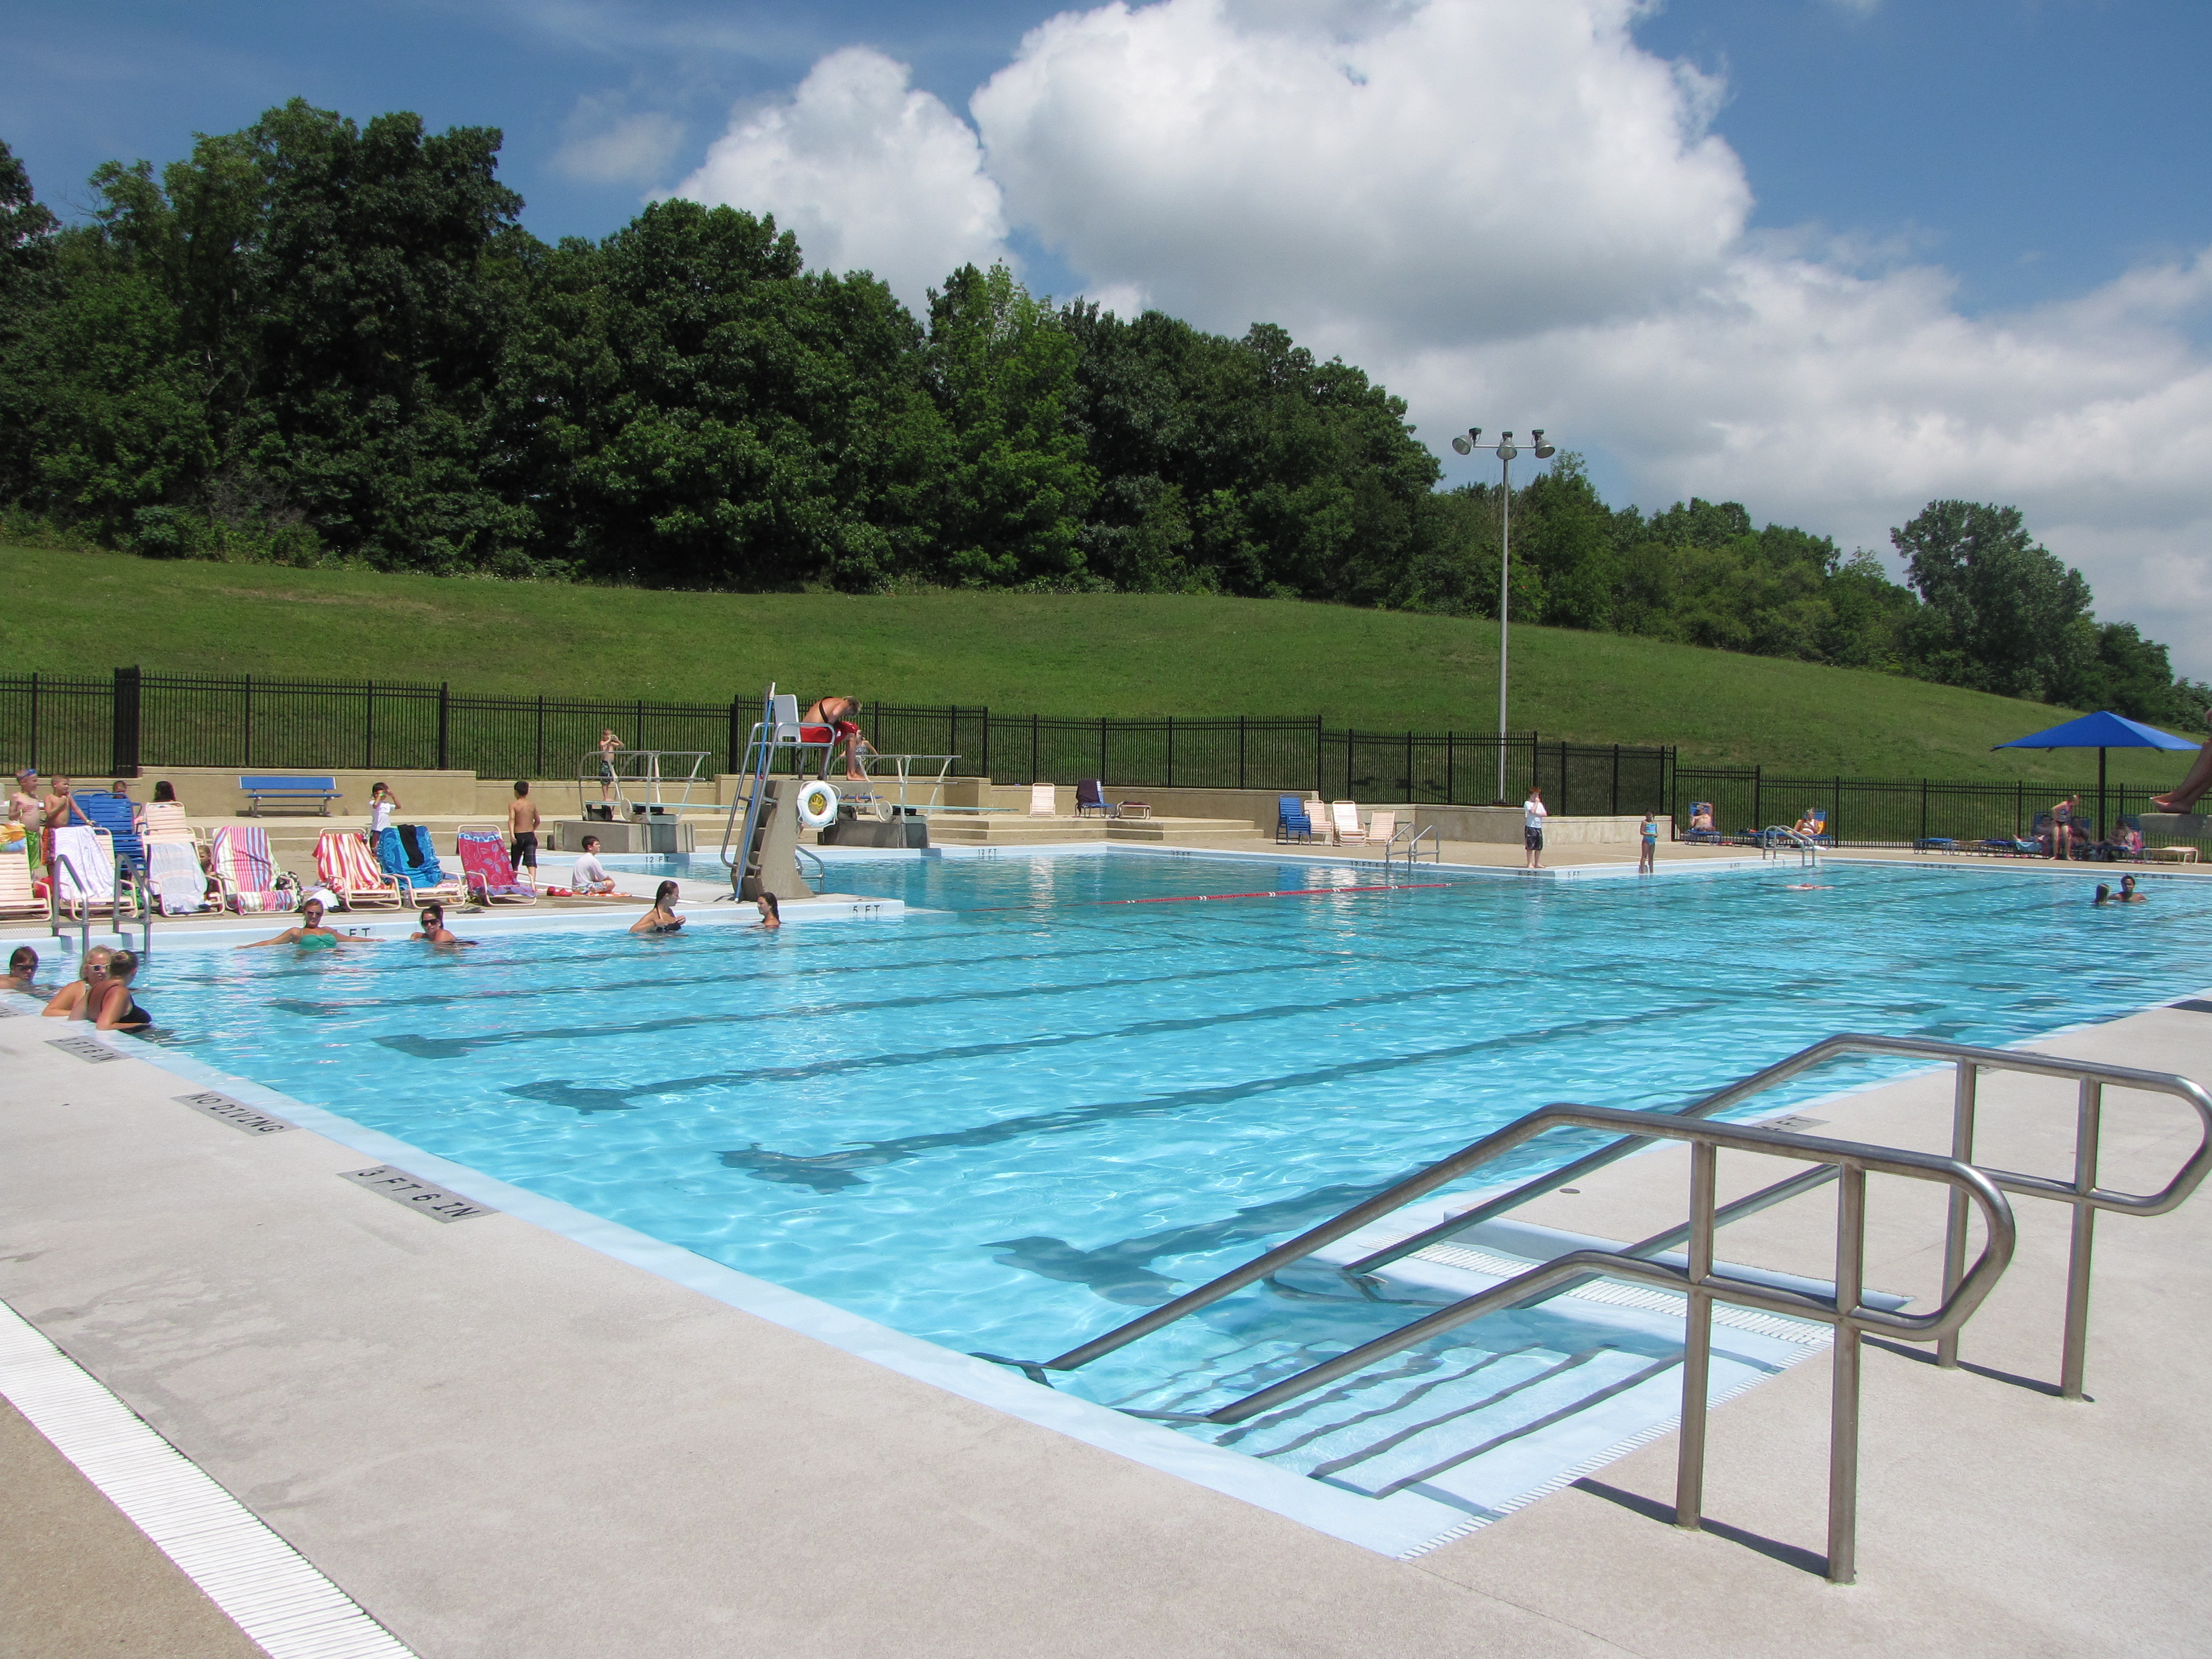 Swimming Pool - Lessons - Open Swim - Fennimore WI |Community Swimming